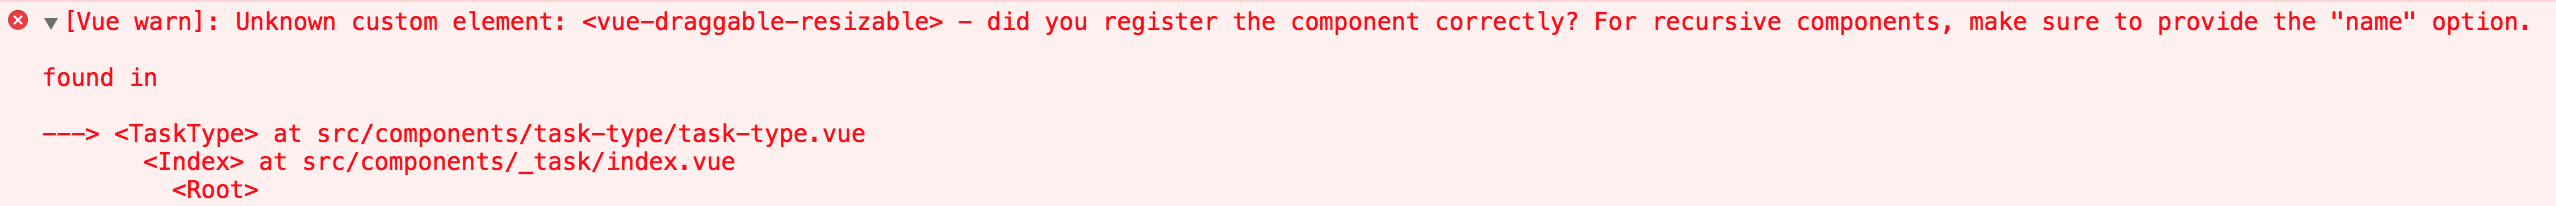 did you register the component correctly? · Issue #120 · mauricius